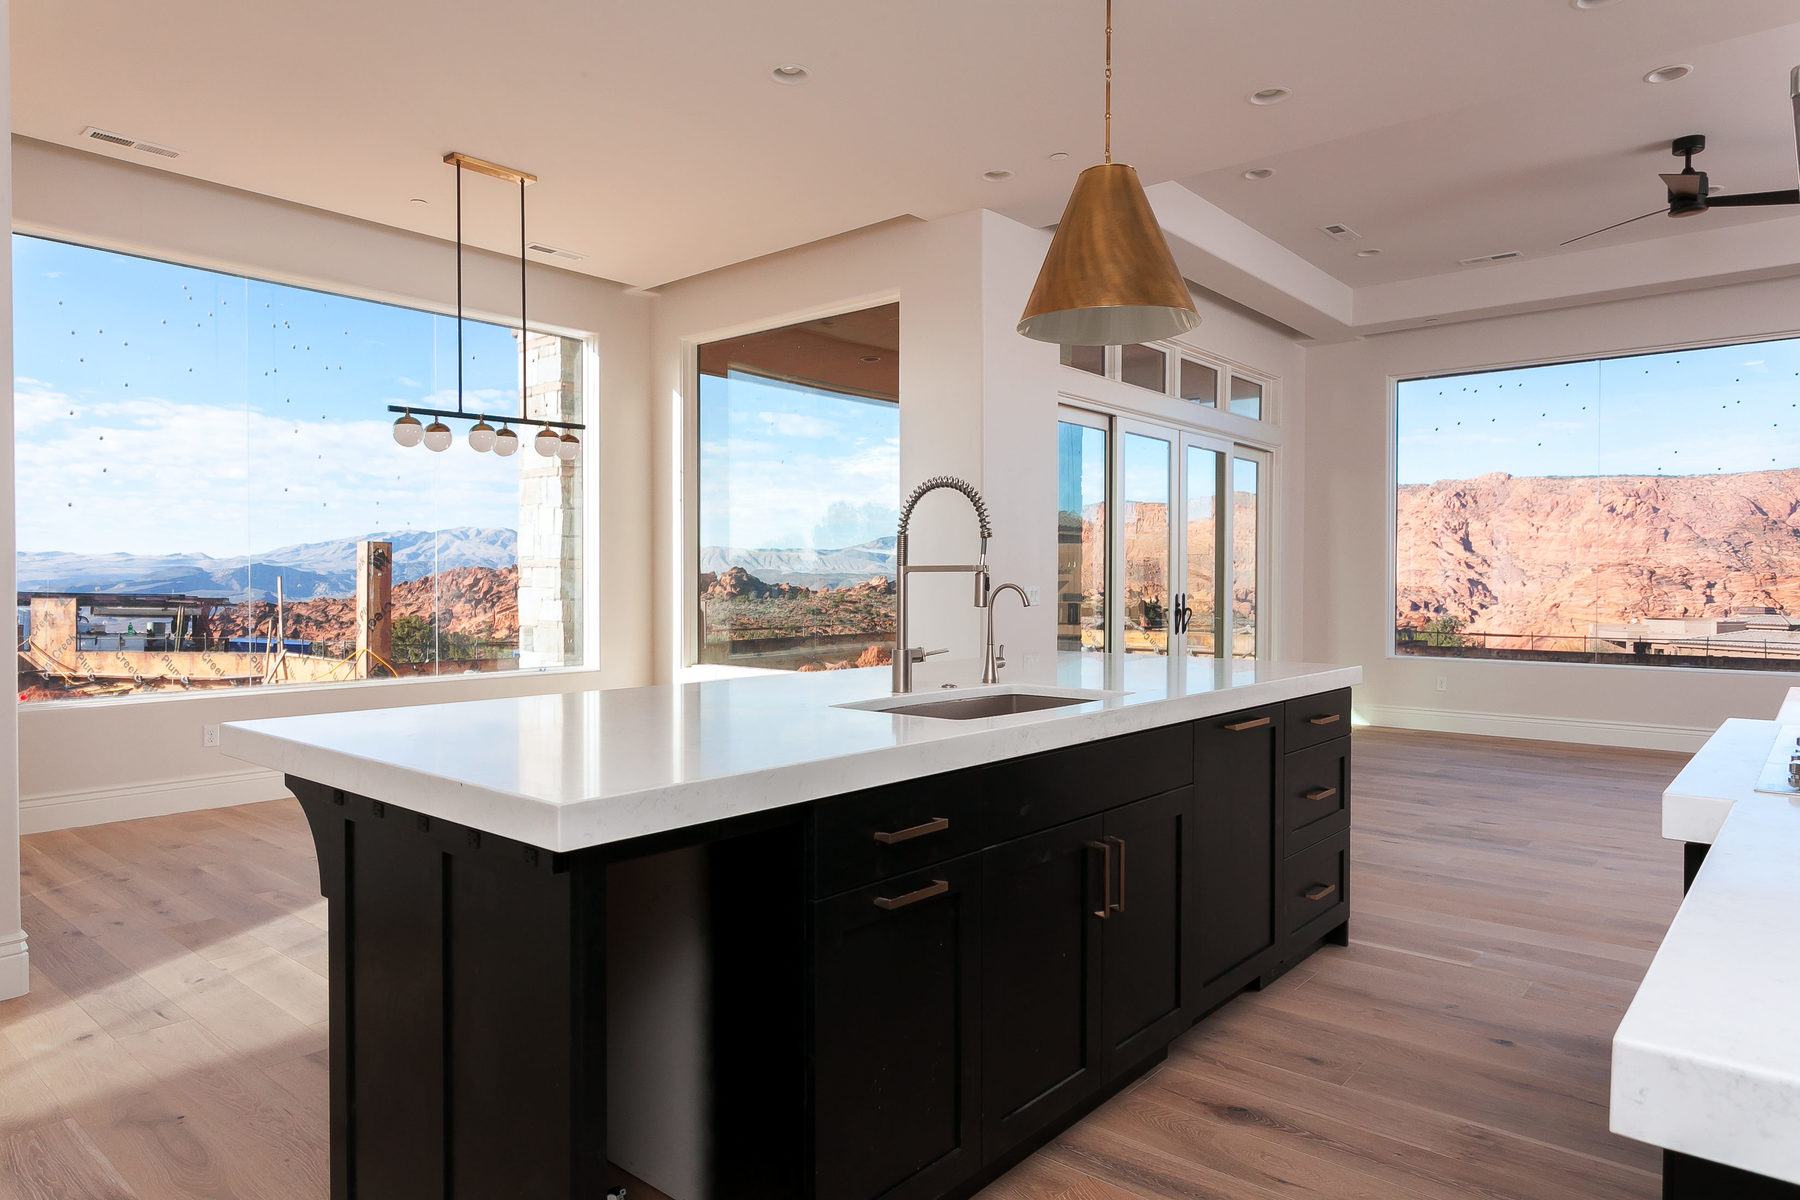 Single Family Home for Sale at Newly Built Single Level Home in the Ledges 4584 Painted Sky Dr St. George, Utah 84770 United States